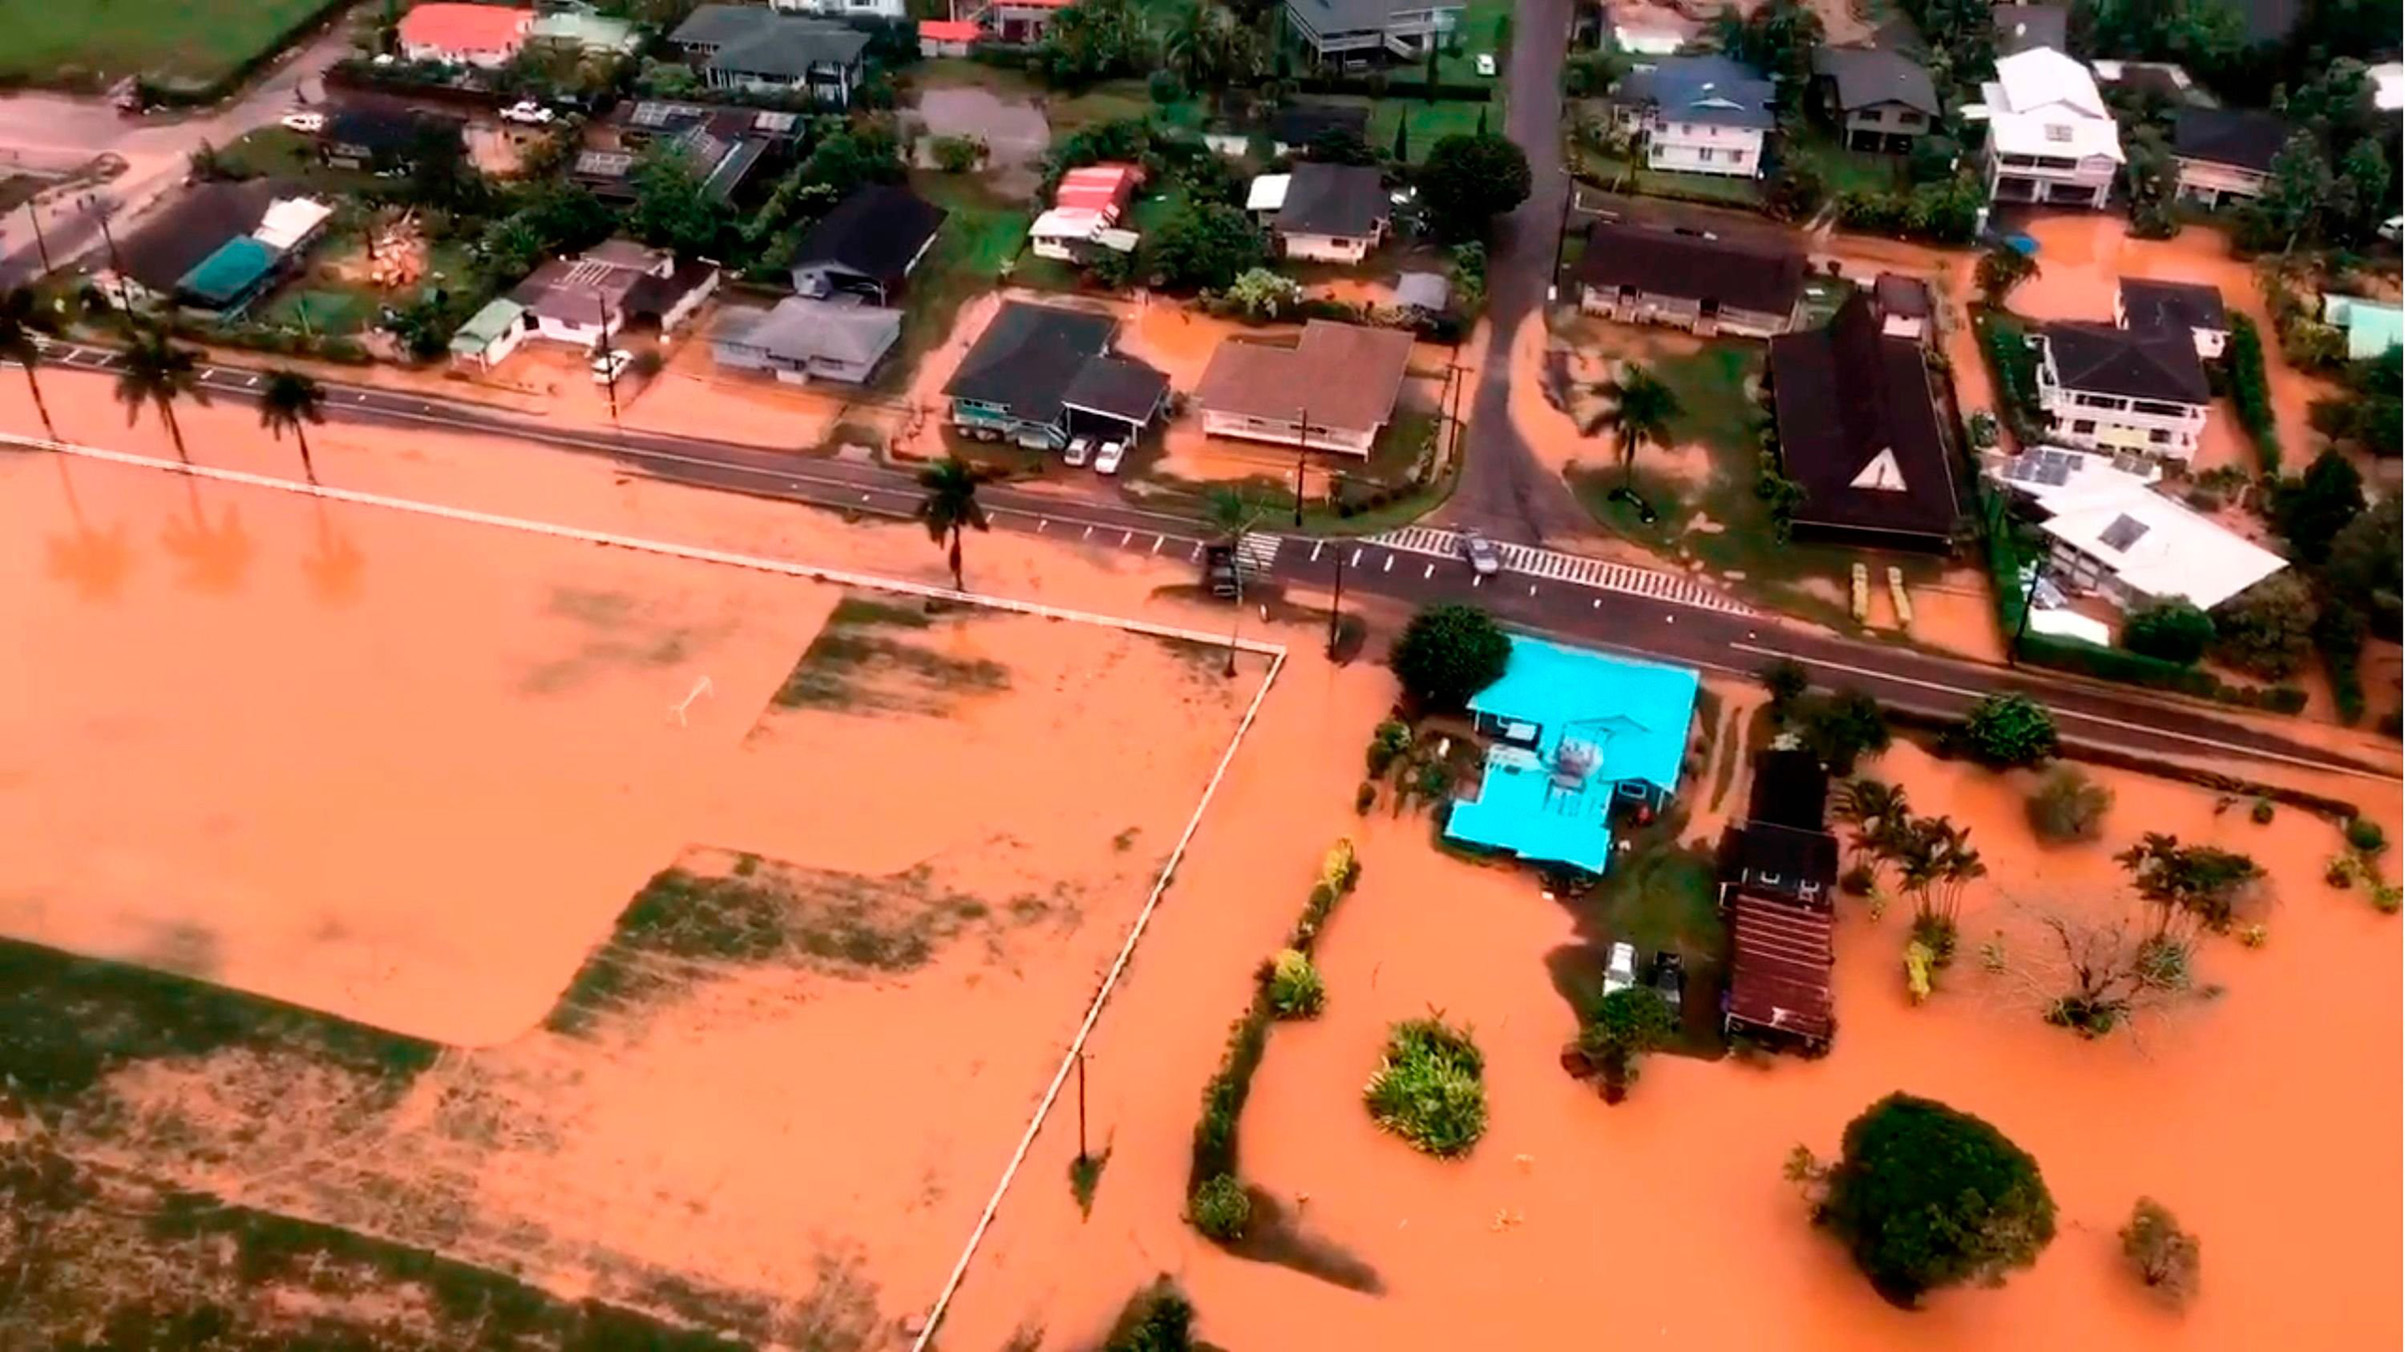 This image taken from video provided by the U.S. Coast Guard shows flooding along Kauai's Hanalei Bay, Hawaii on April 15, 2018.